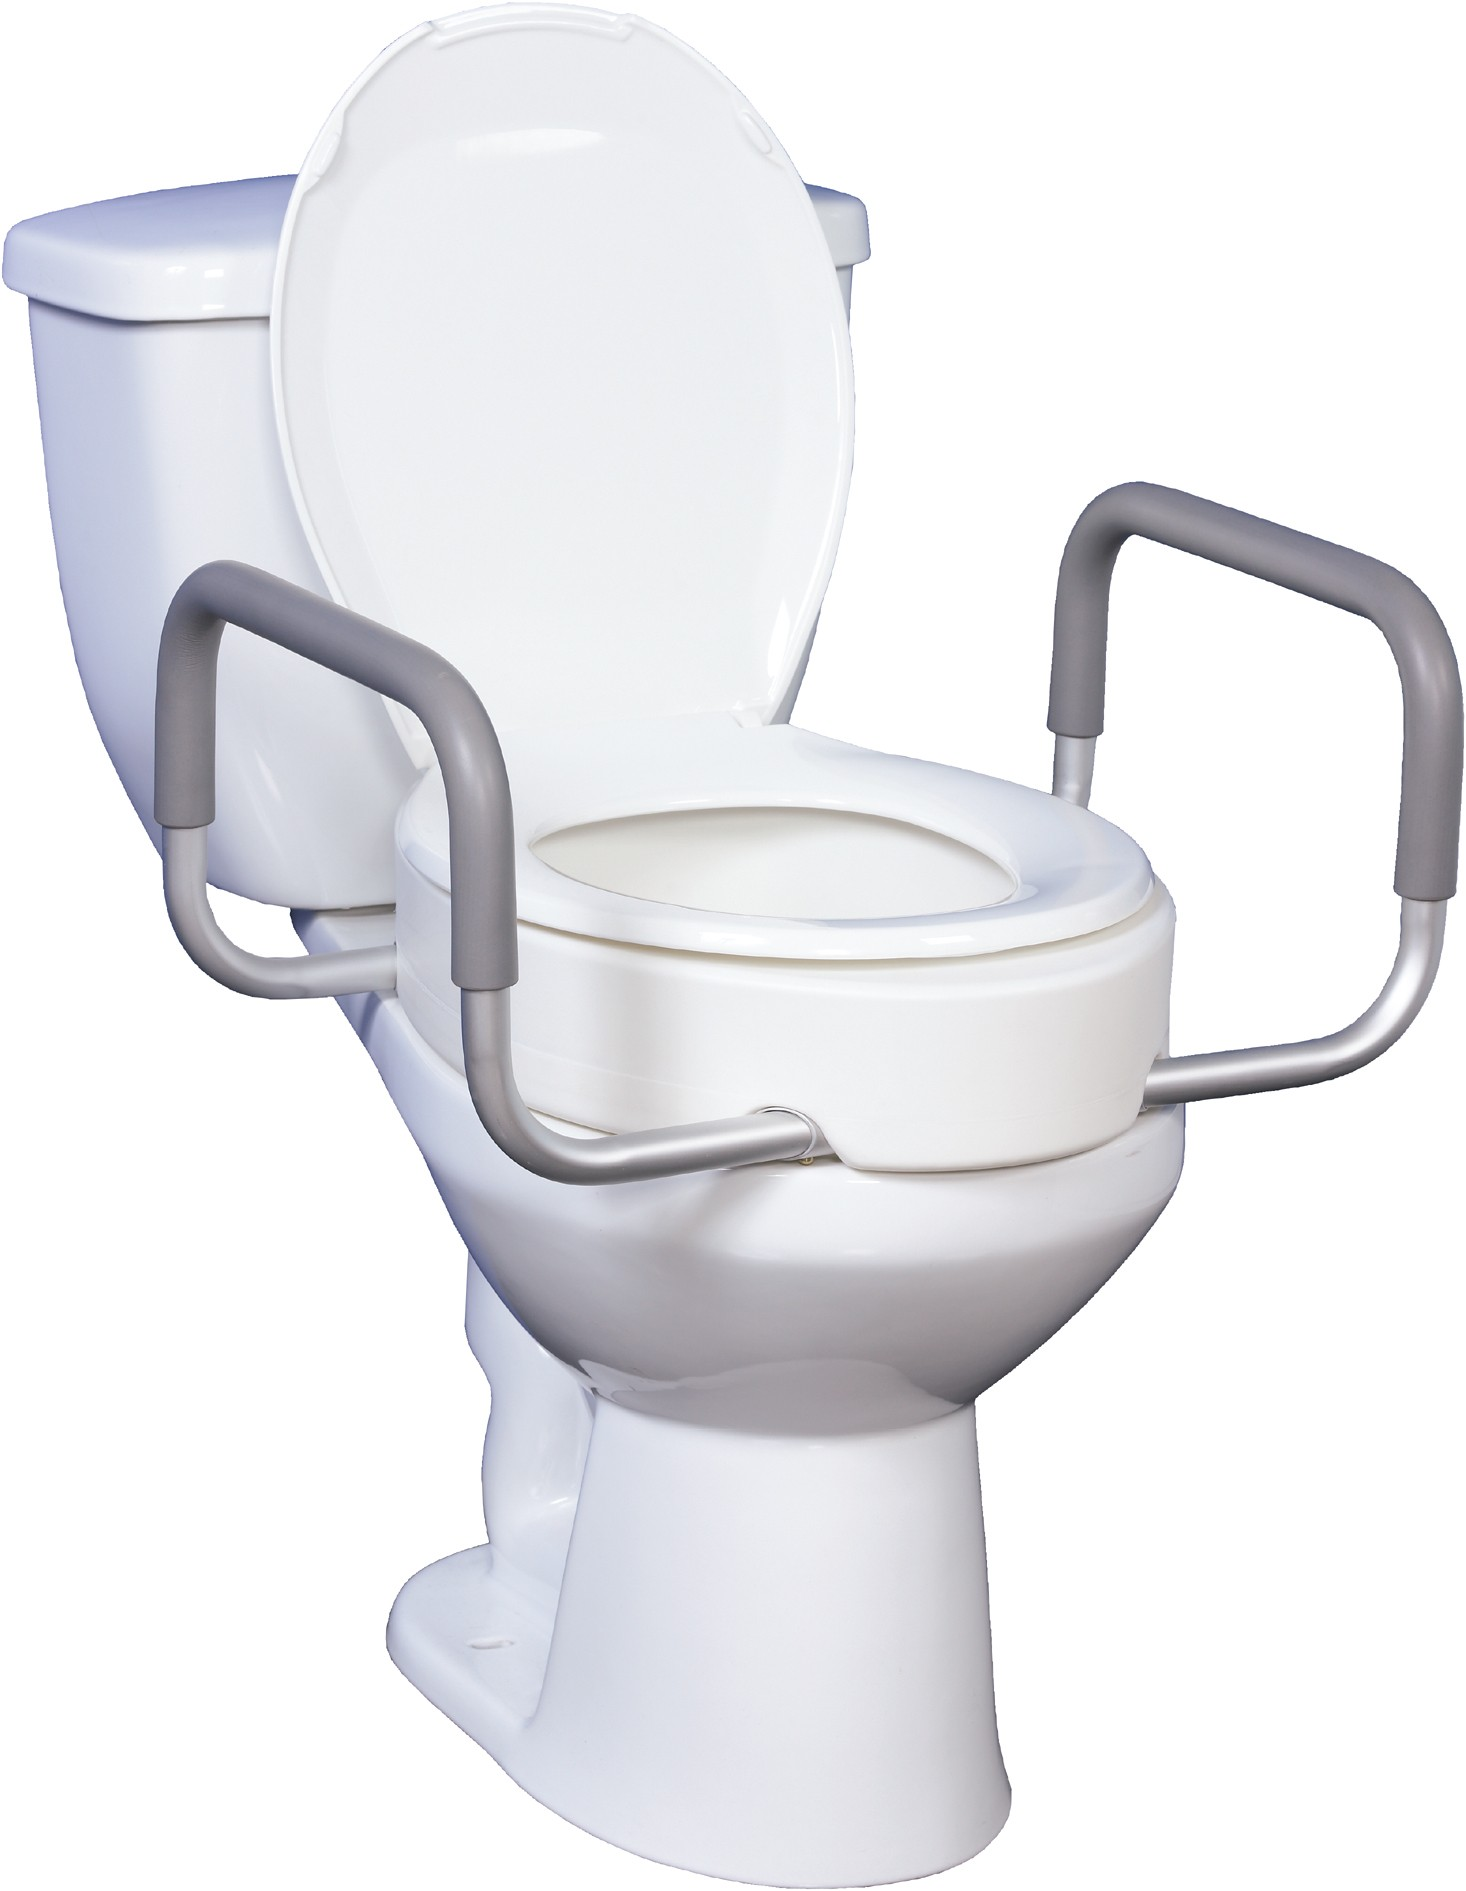 Raised Toilet Seat Image